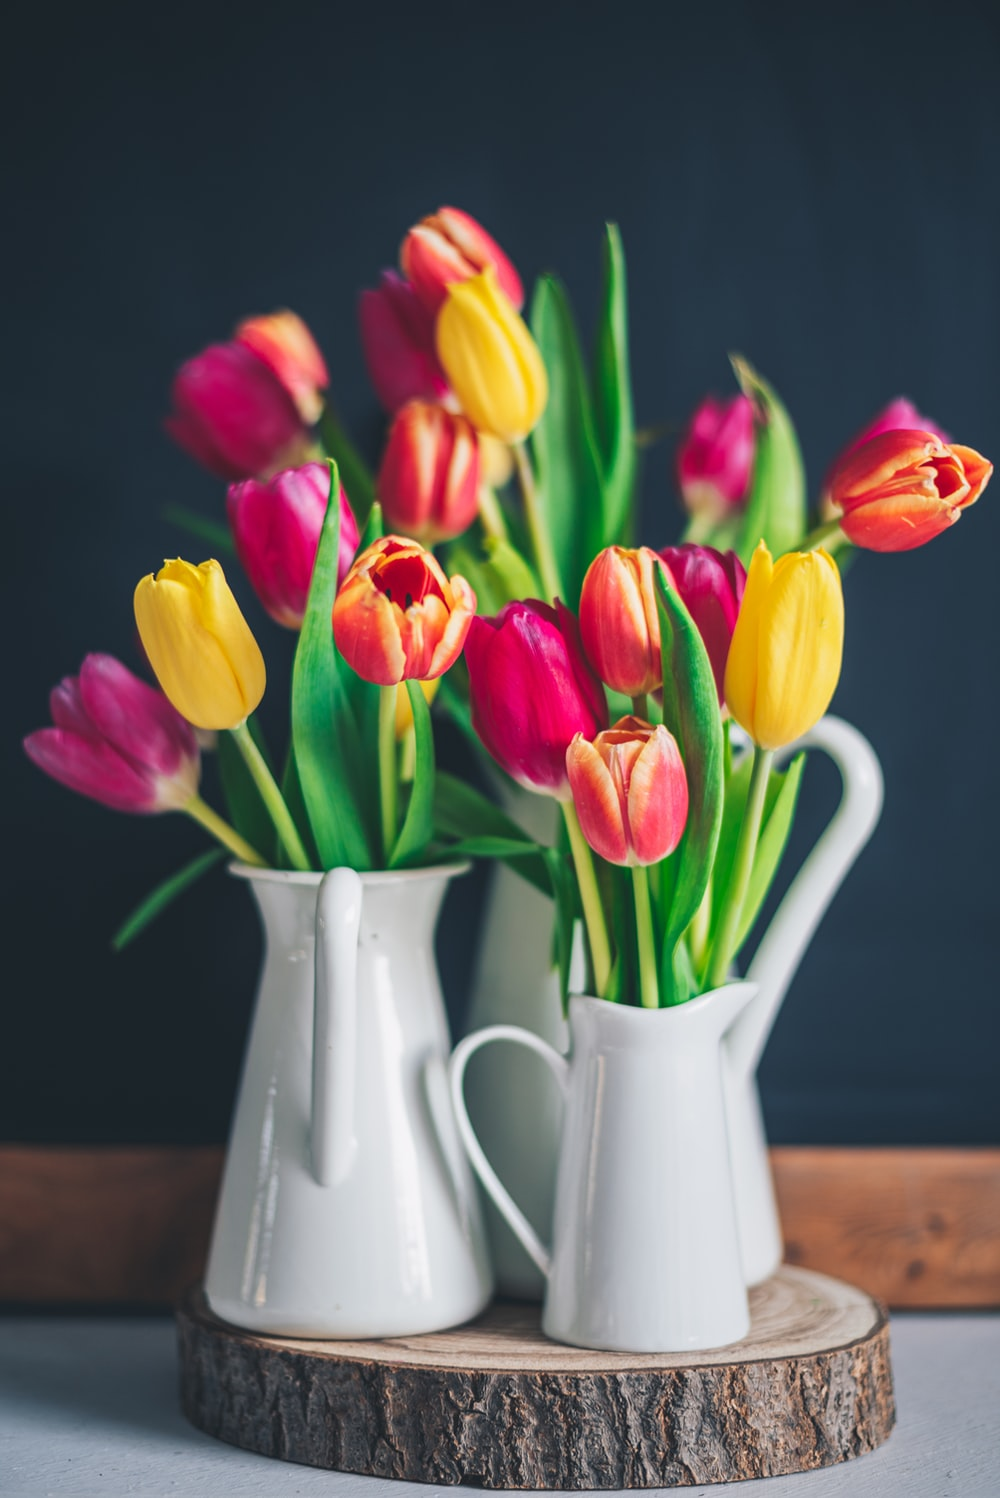 red and yellow tulips in white ceramic vase